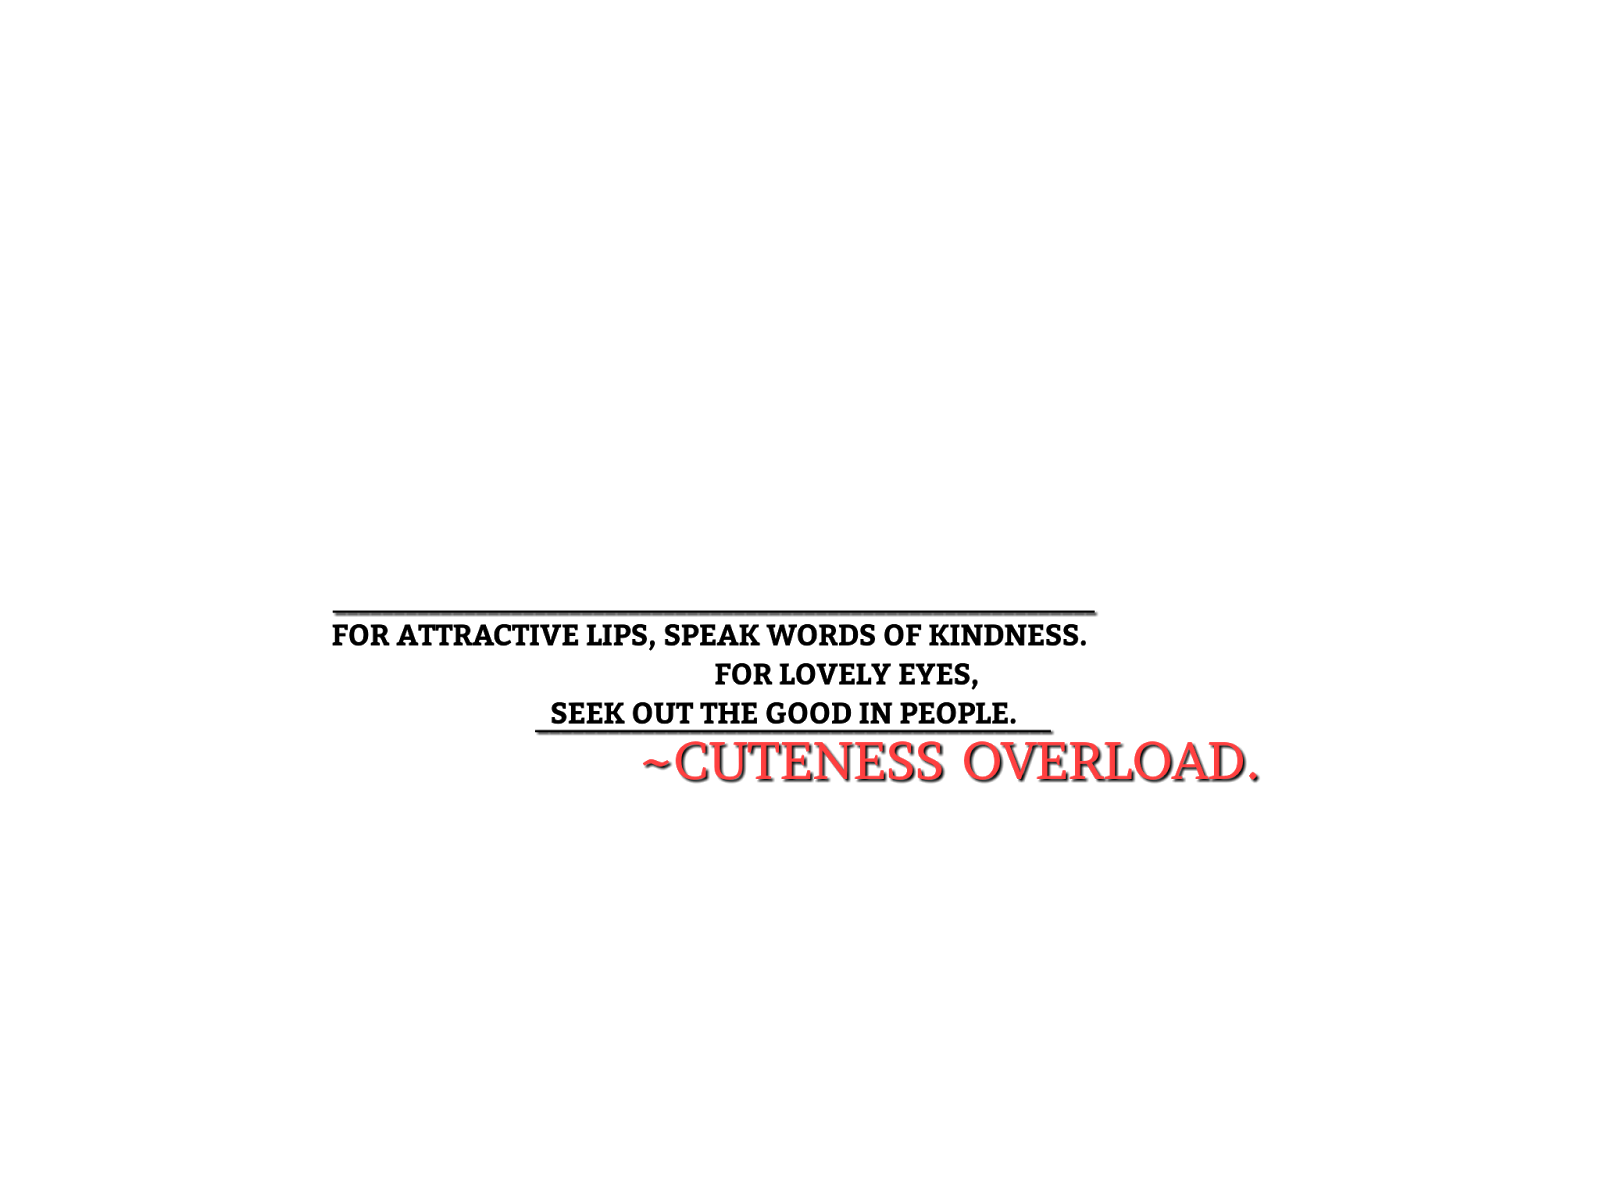 SOME NEW BLACK AND RED TEXT PNG FOR GIRLS BY RANDHIR